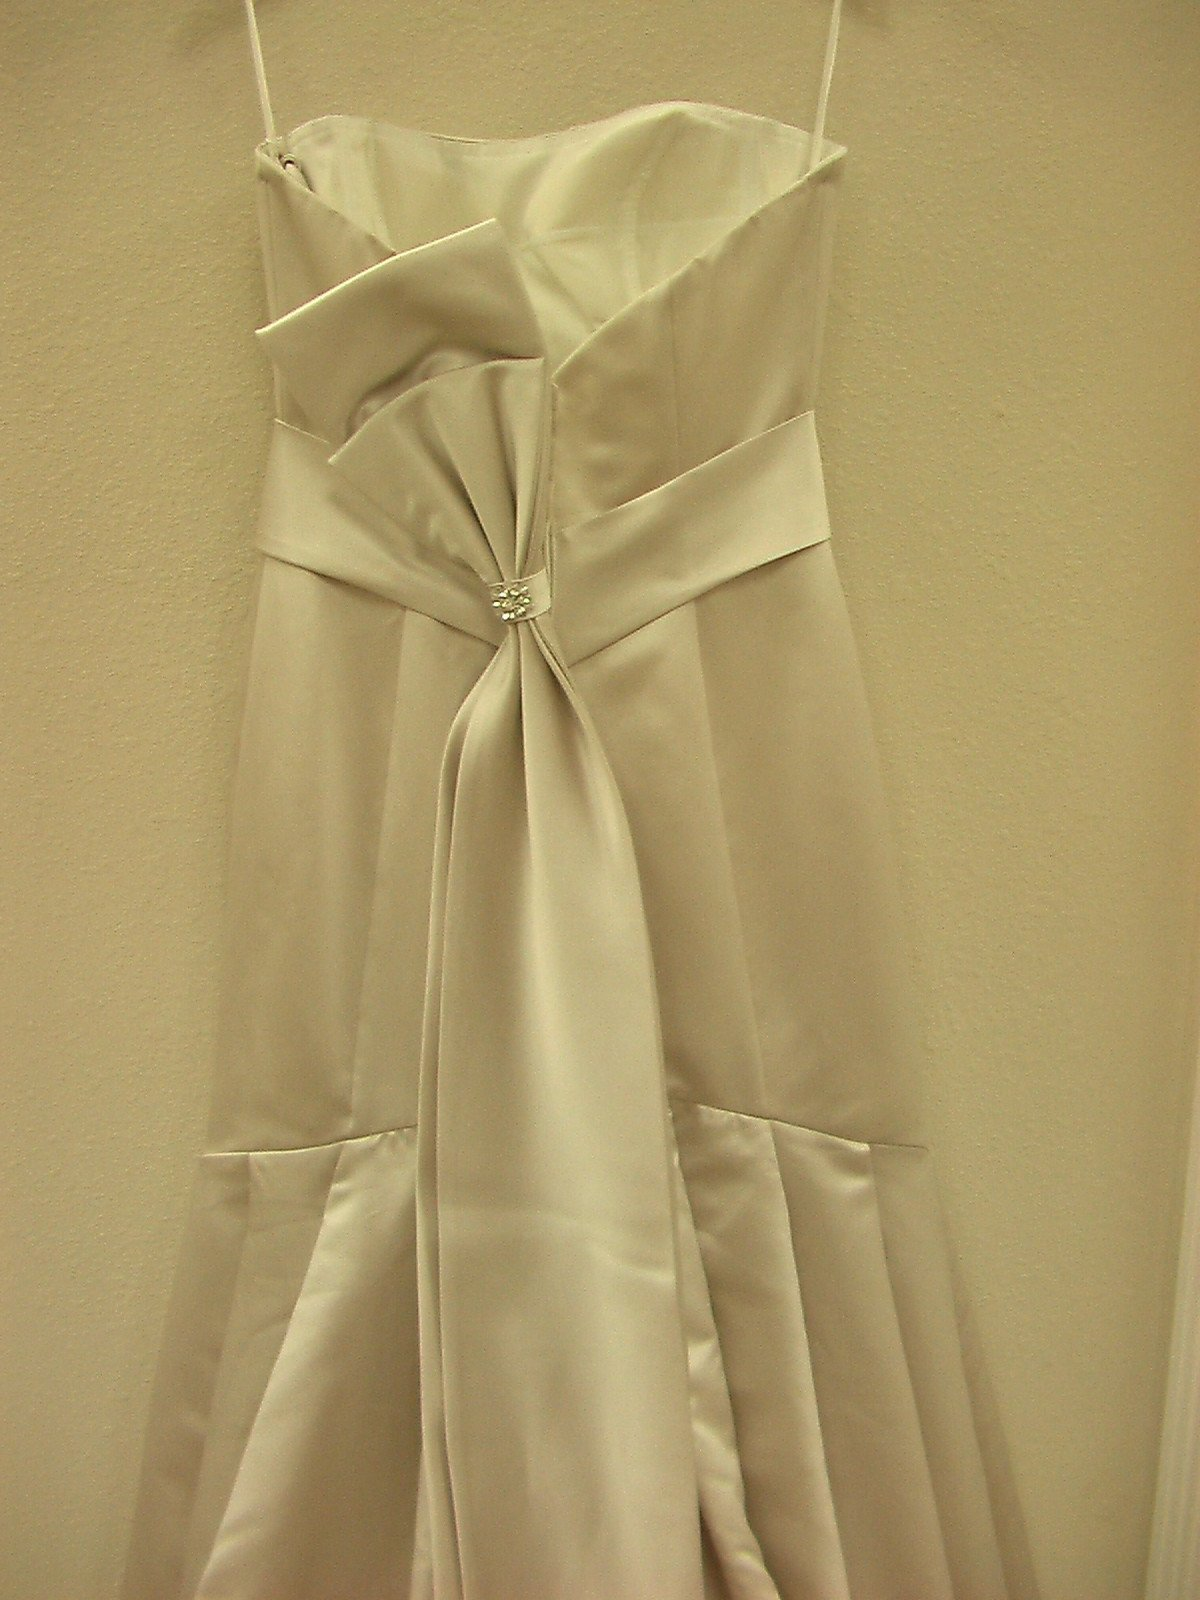 Casablanca 1910 Gold size 10 In Stock Wedding Dress - Tom's Bridal